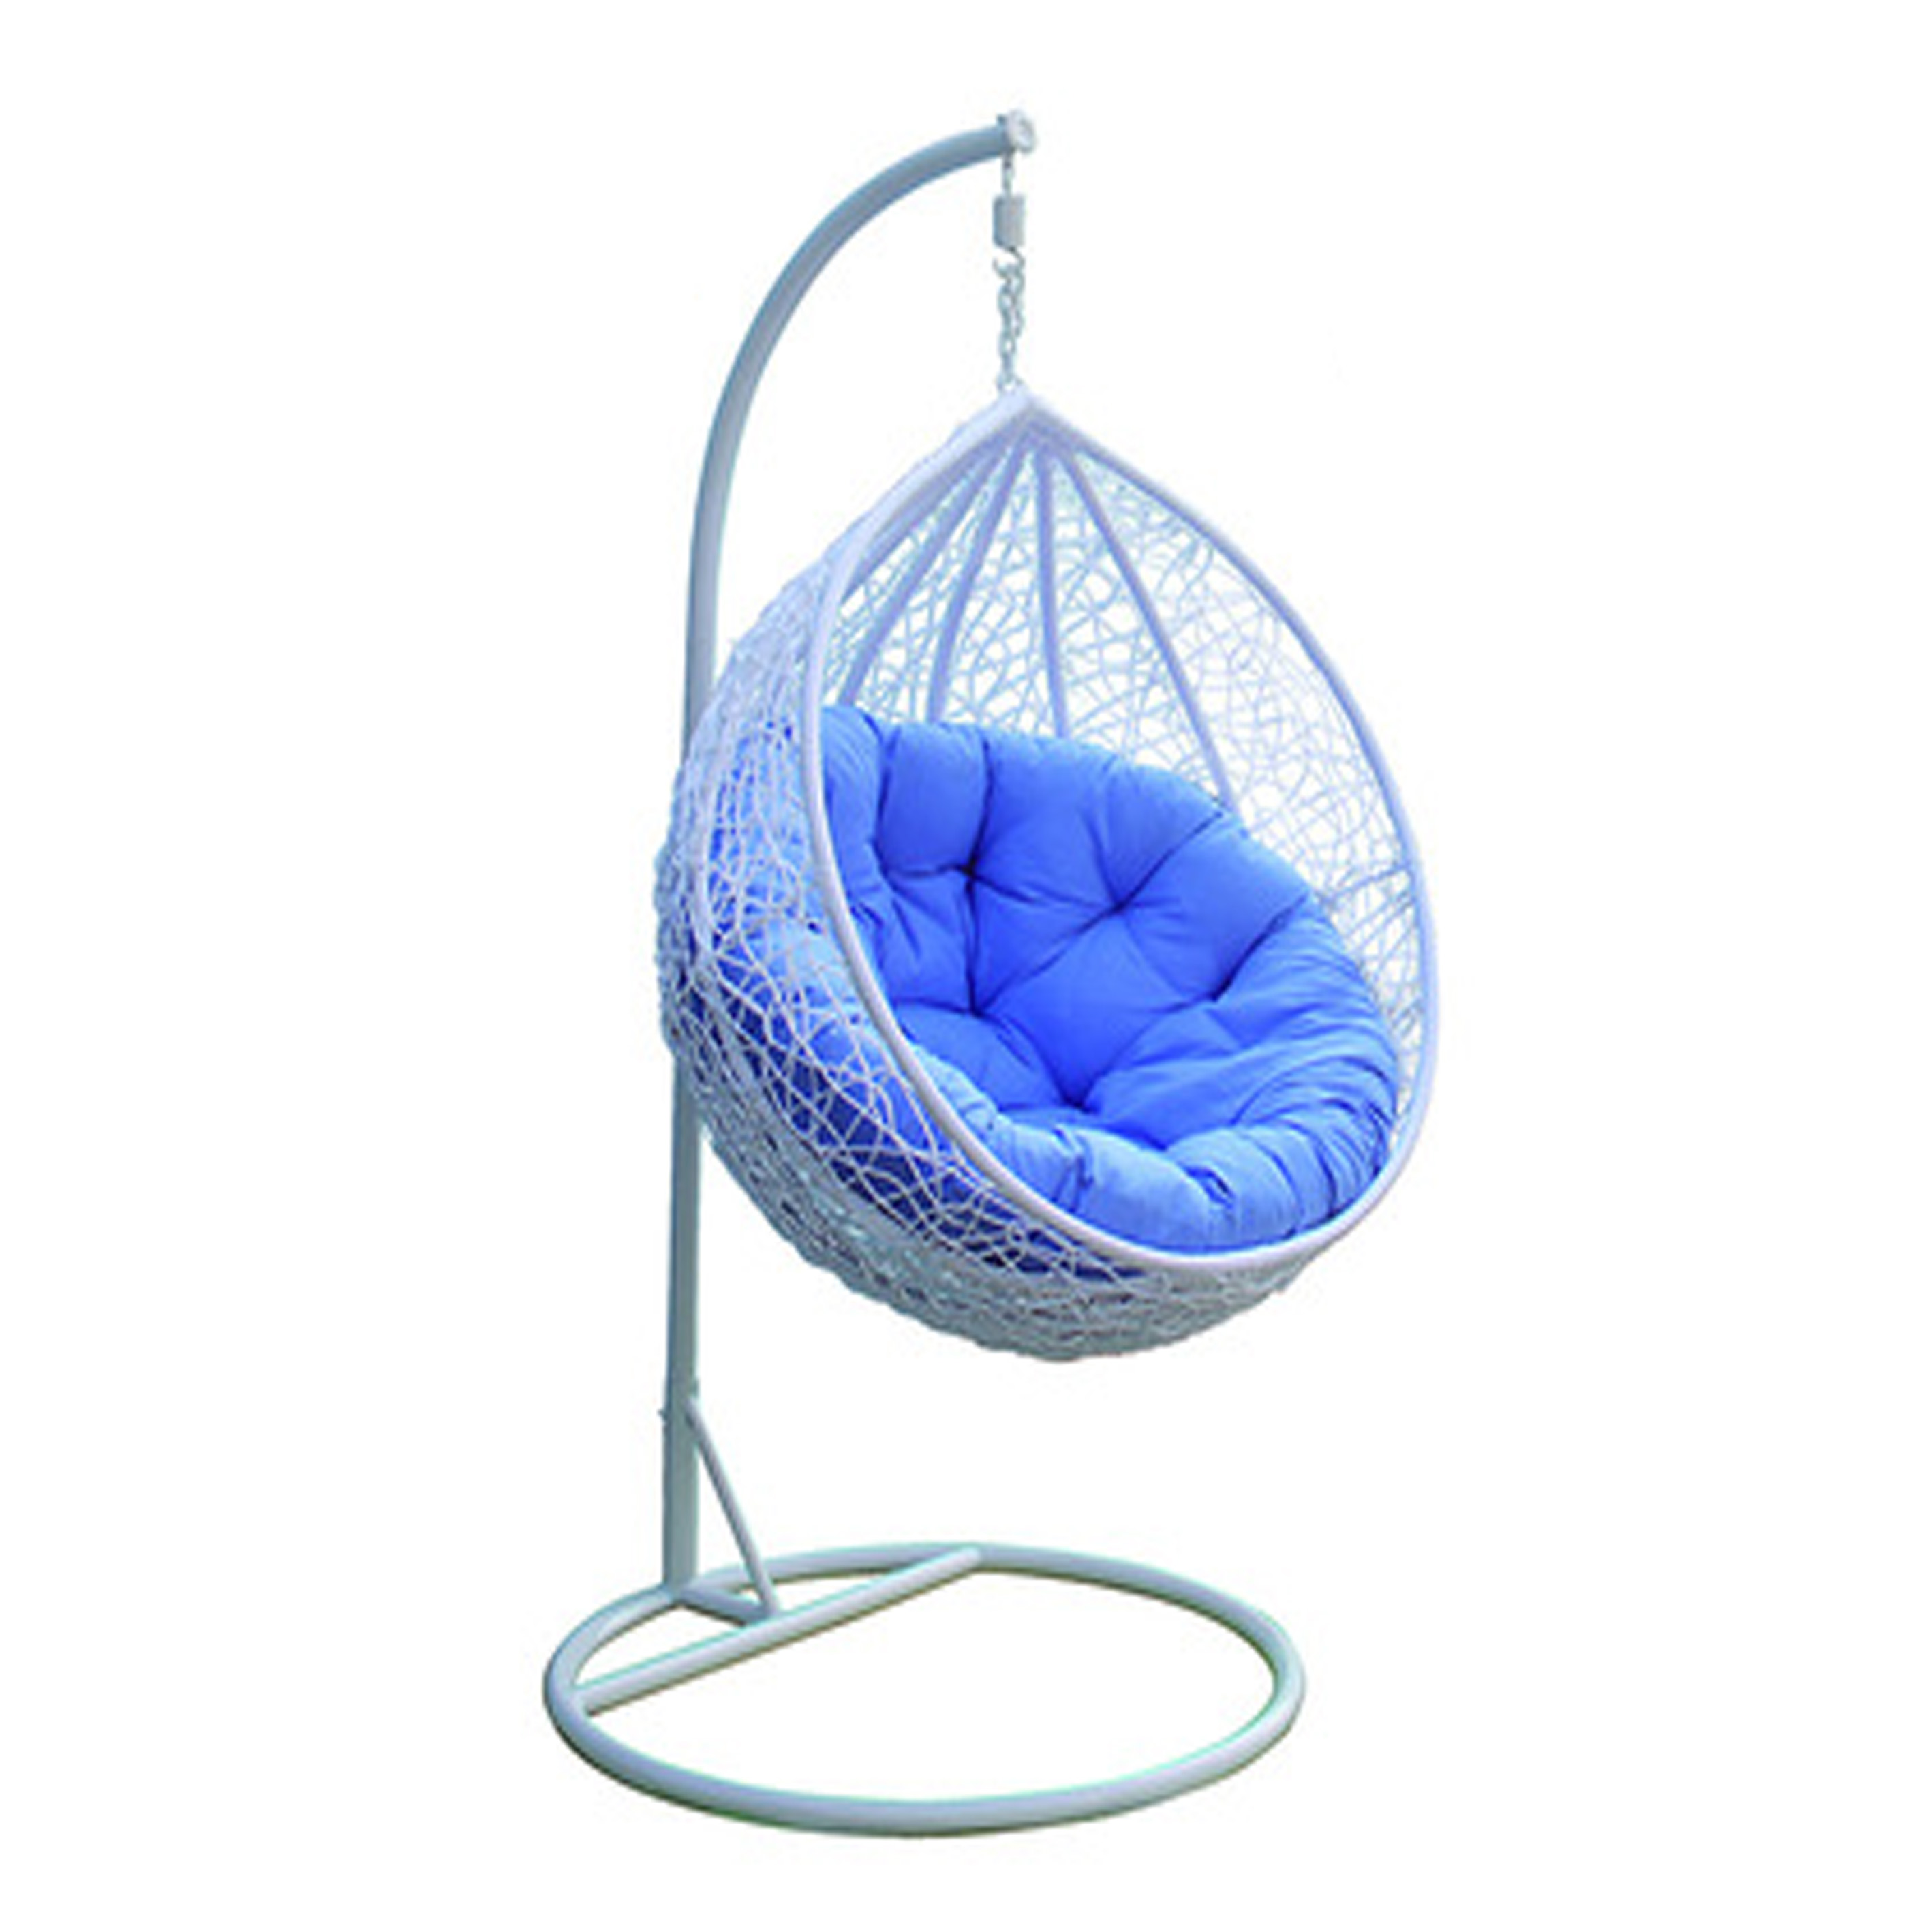 Hanging Swing Chair Cheap For Sale